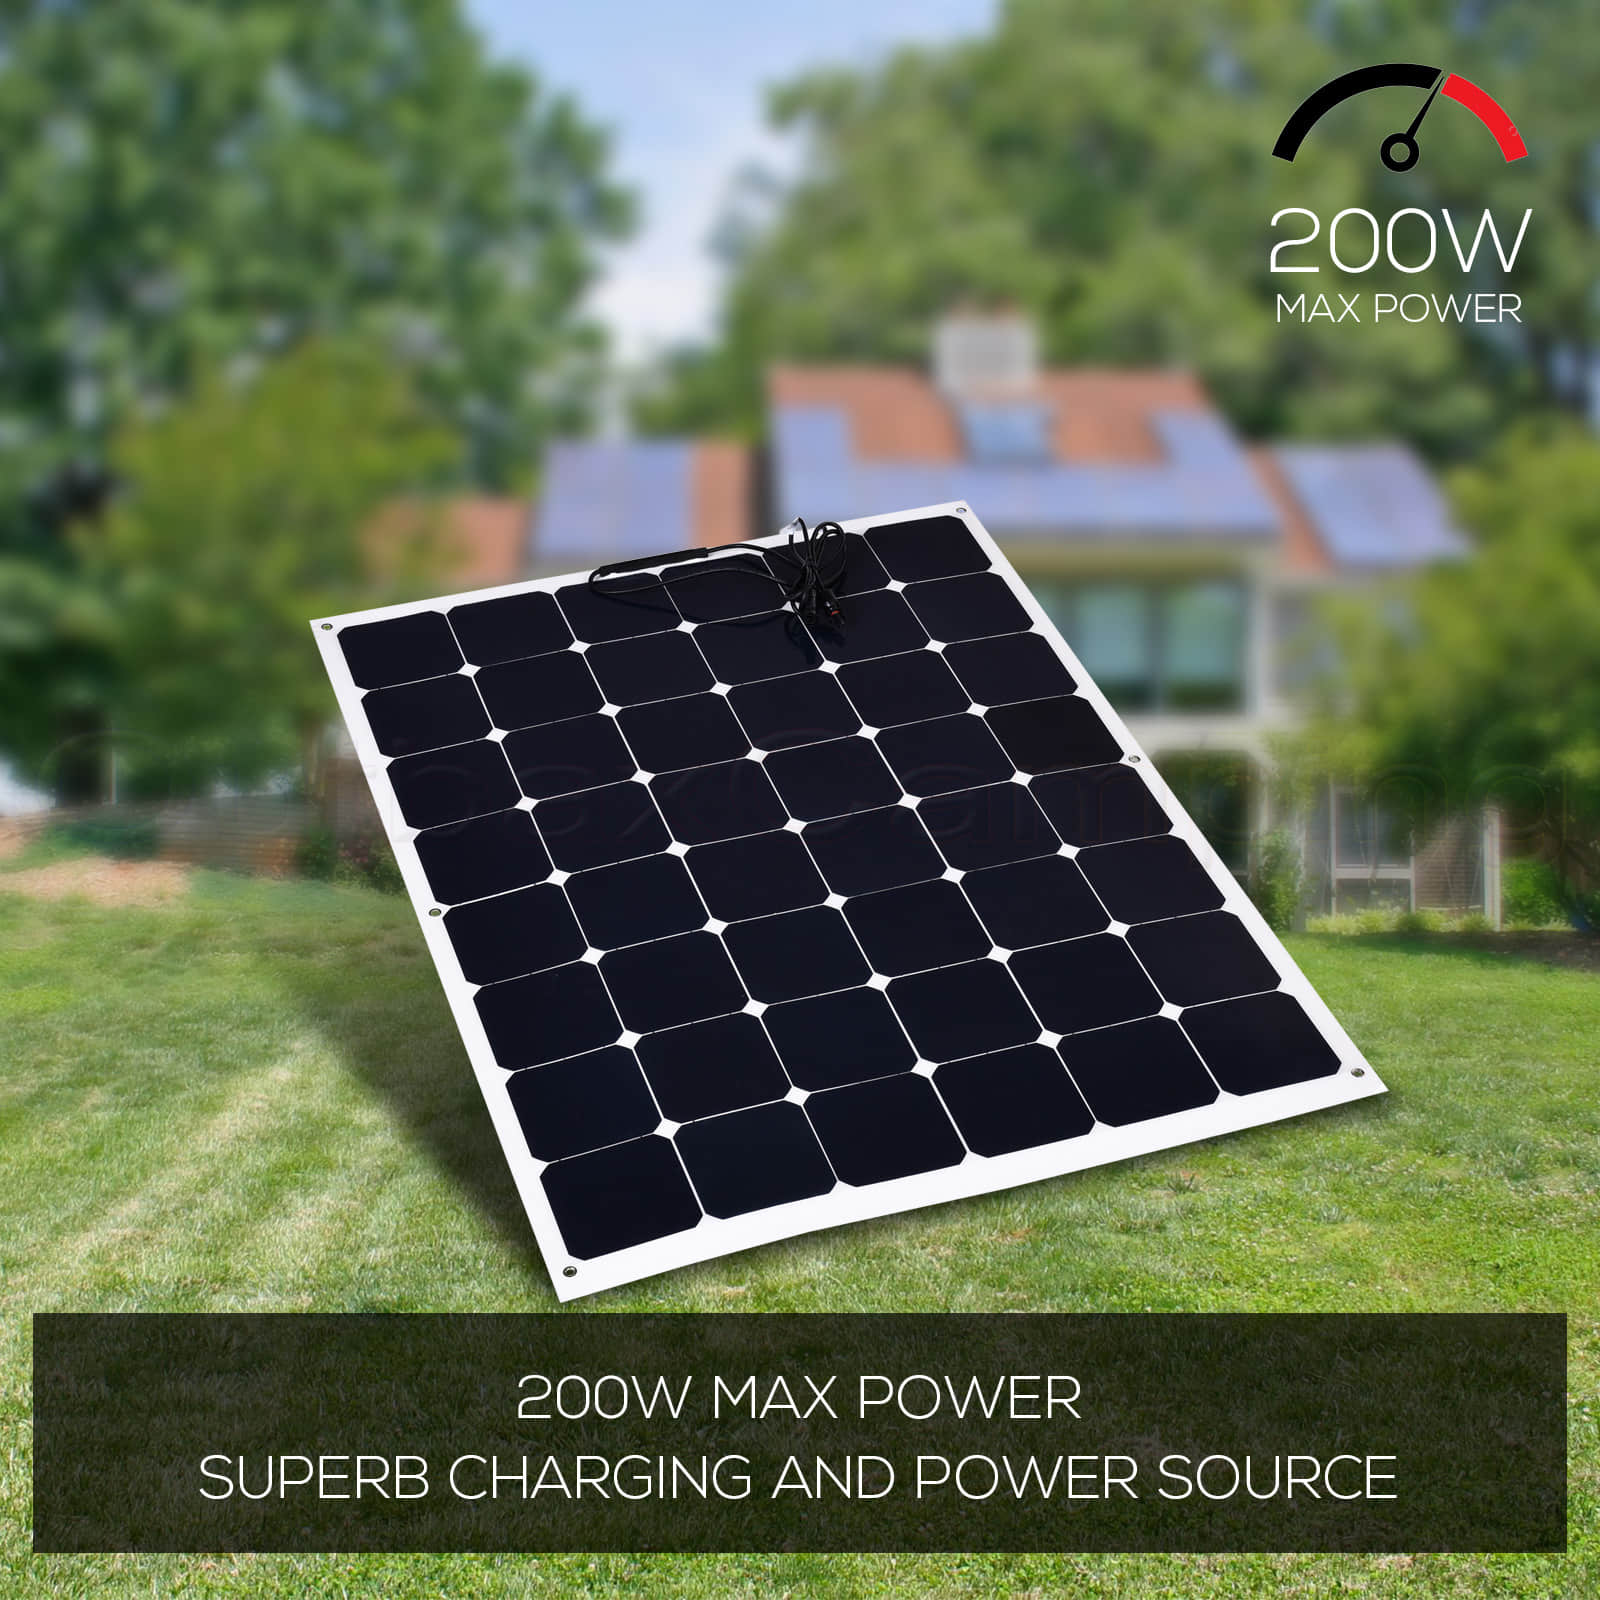 250W-12V-Flexible-Solar-Panel-Boat-Caravan-Camping-Power-Mono-Charging-Kit